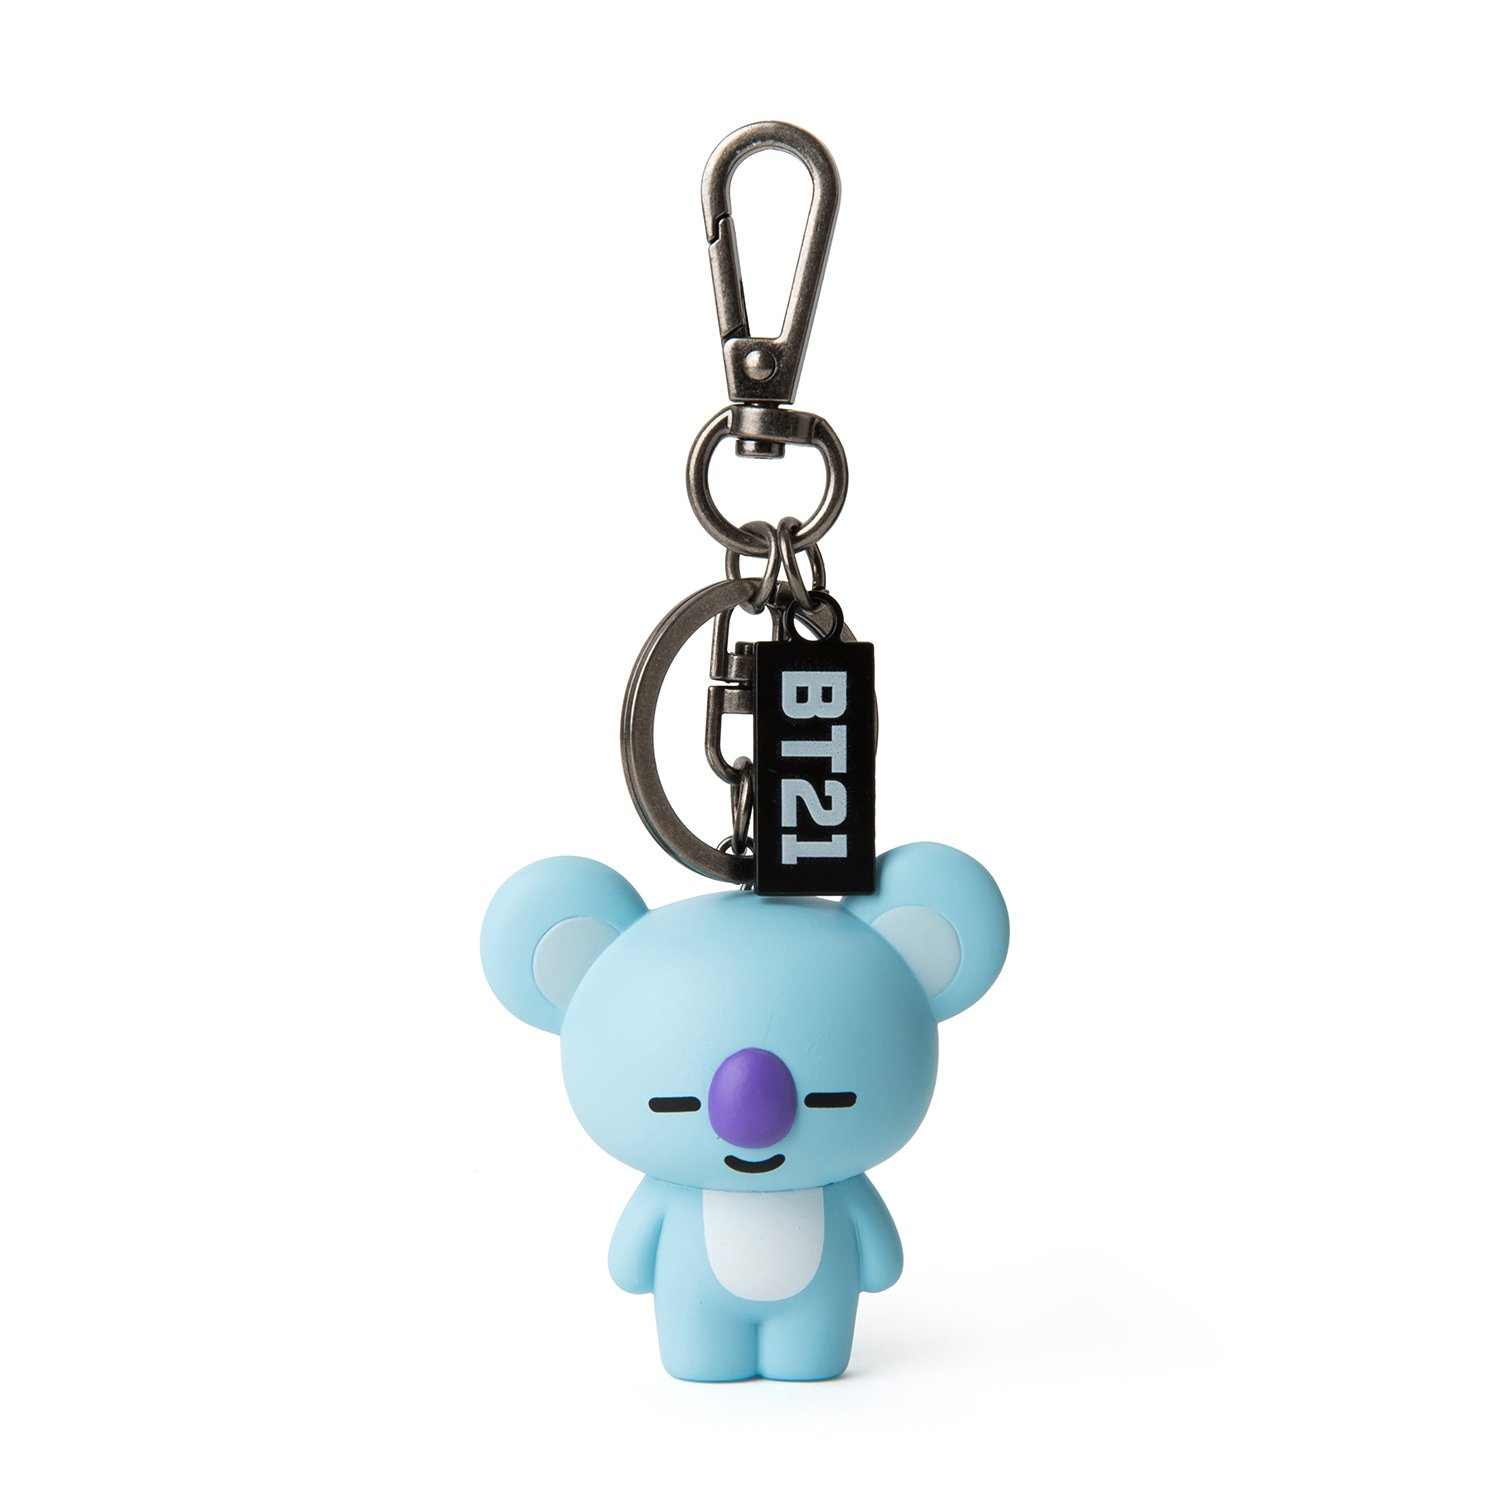 BT21 Official Merchandise by Line Friends - KOYA Keychain Ring